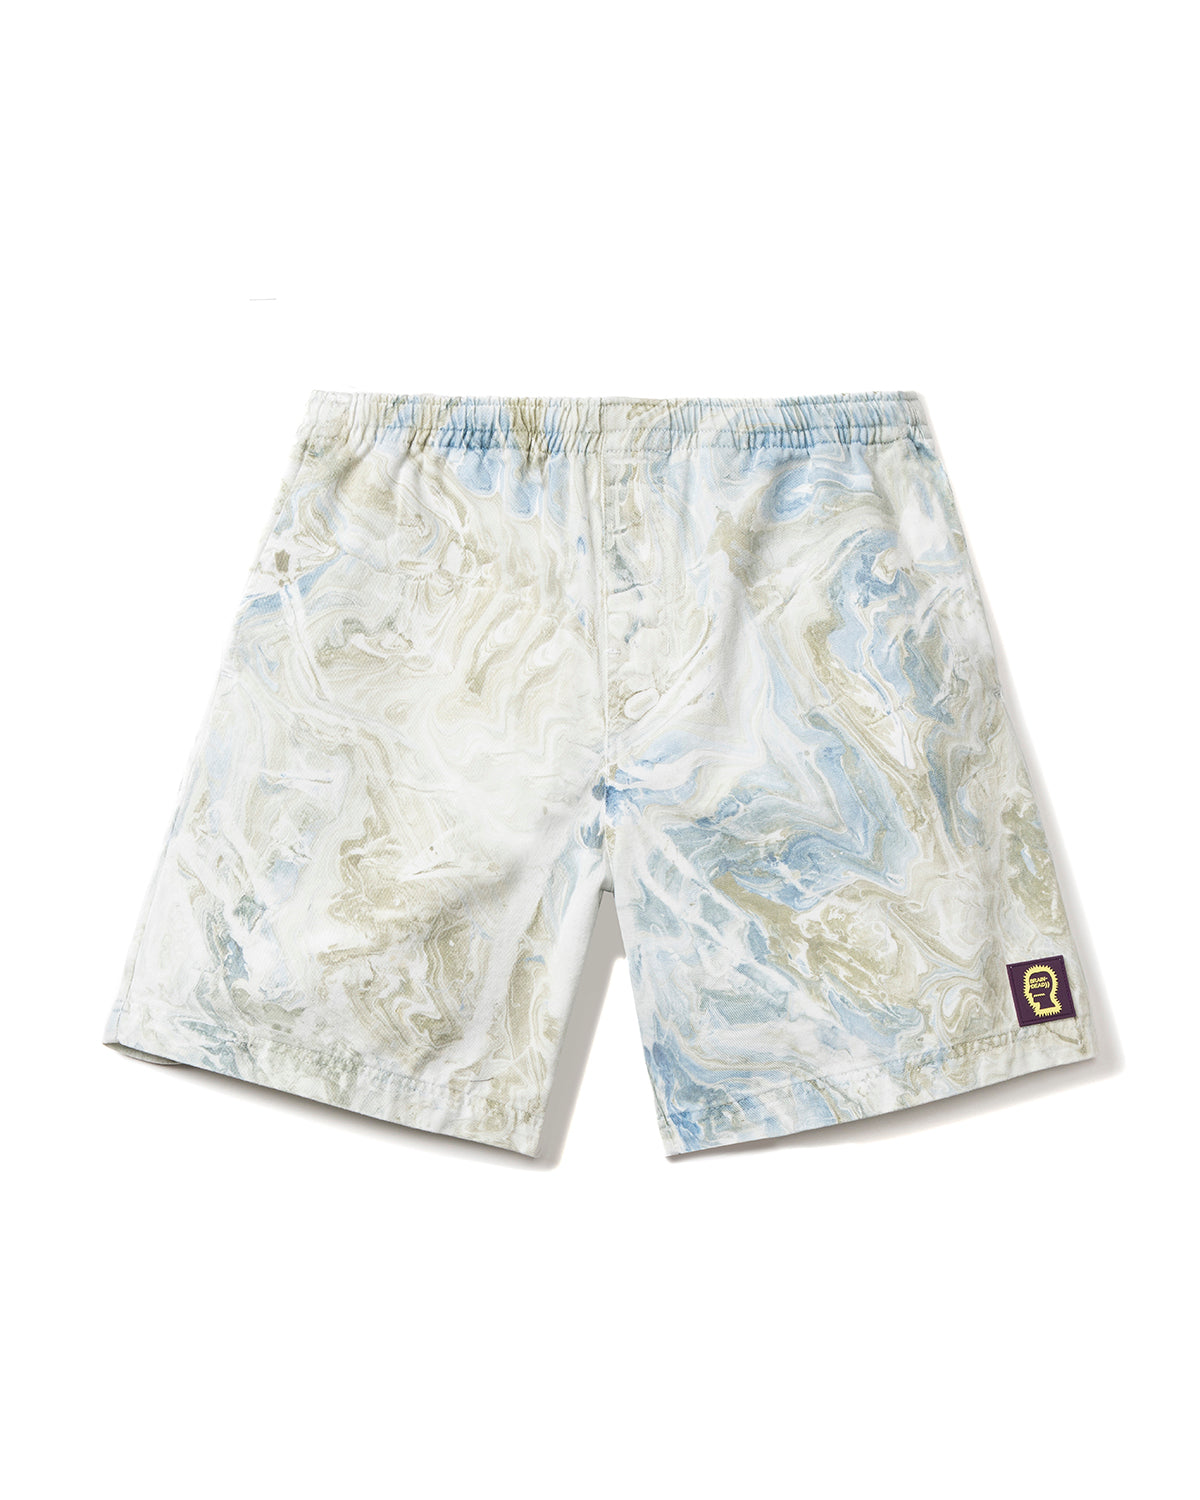 Beach Shorts - Blue Marble Dye - Brain Dead